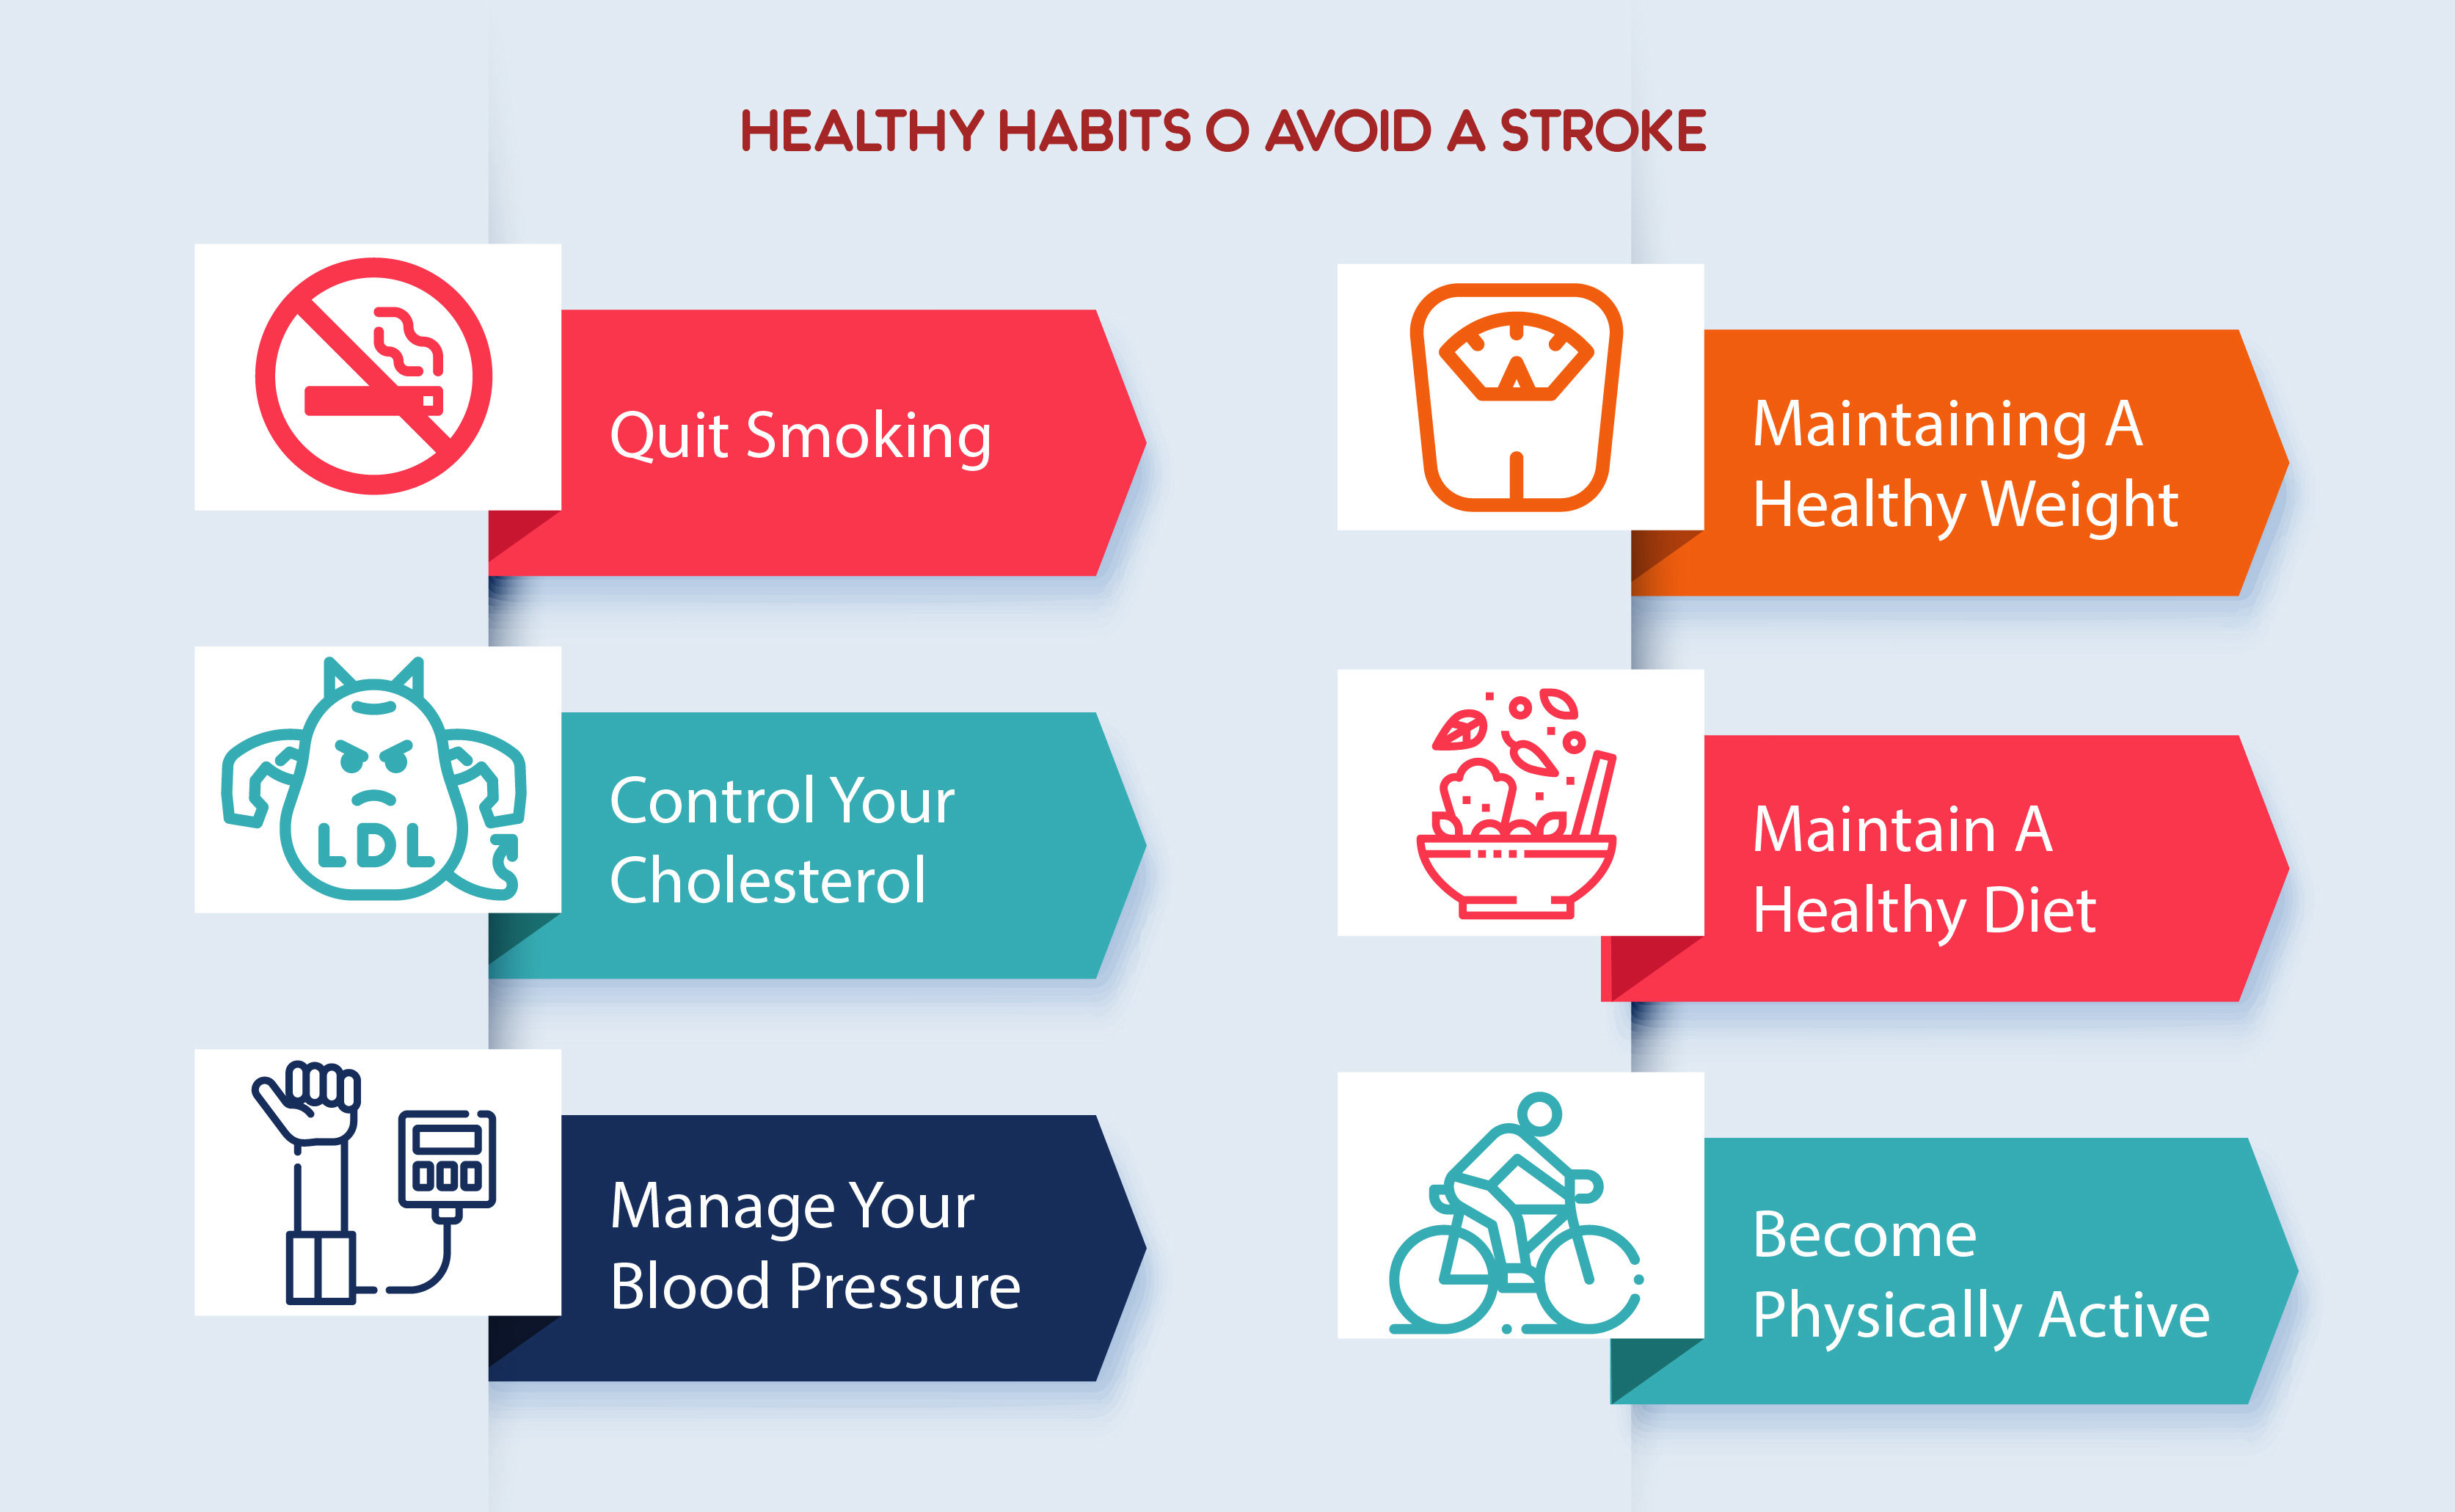 healthy habits to prevent a stroke